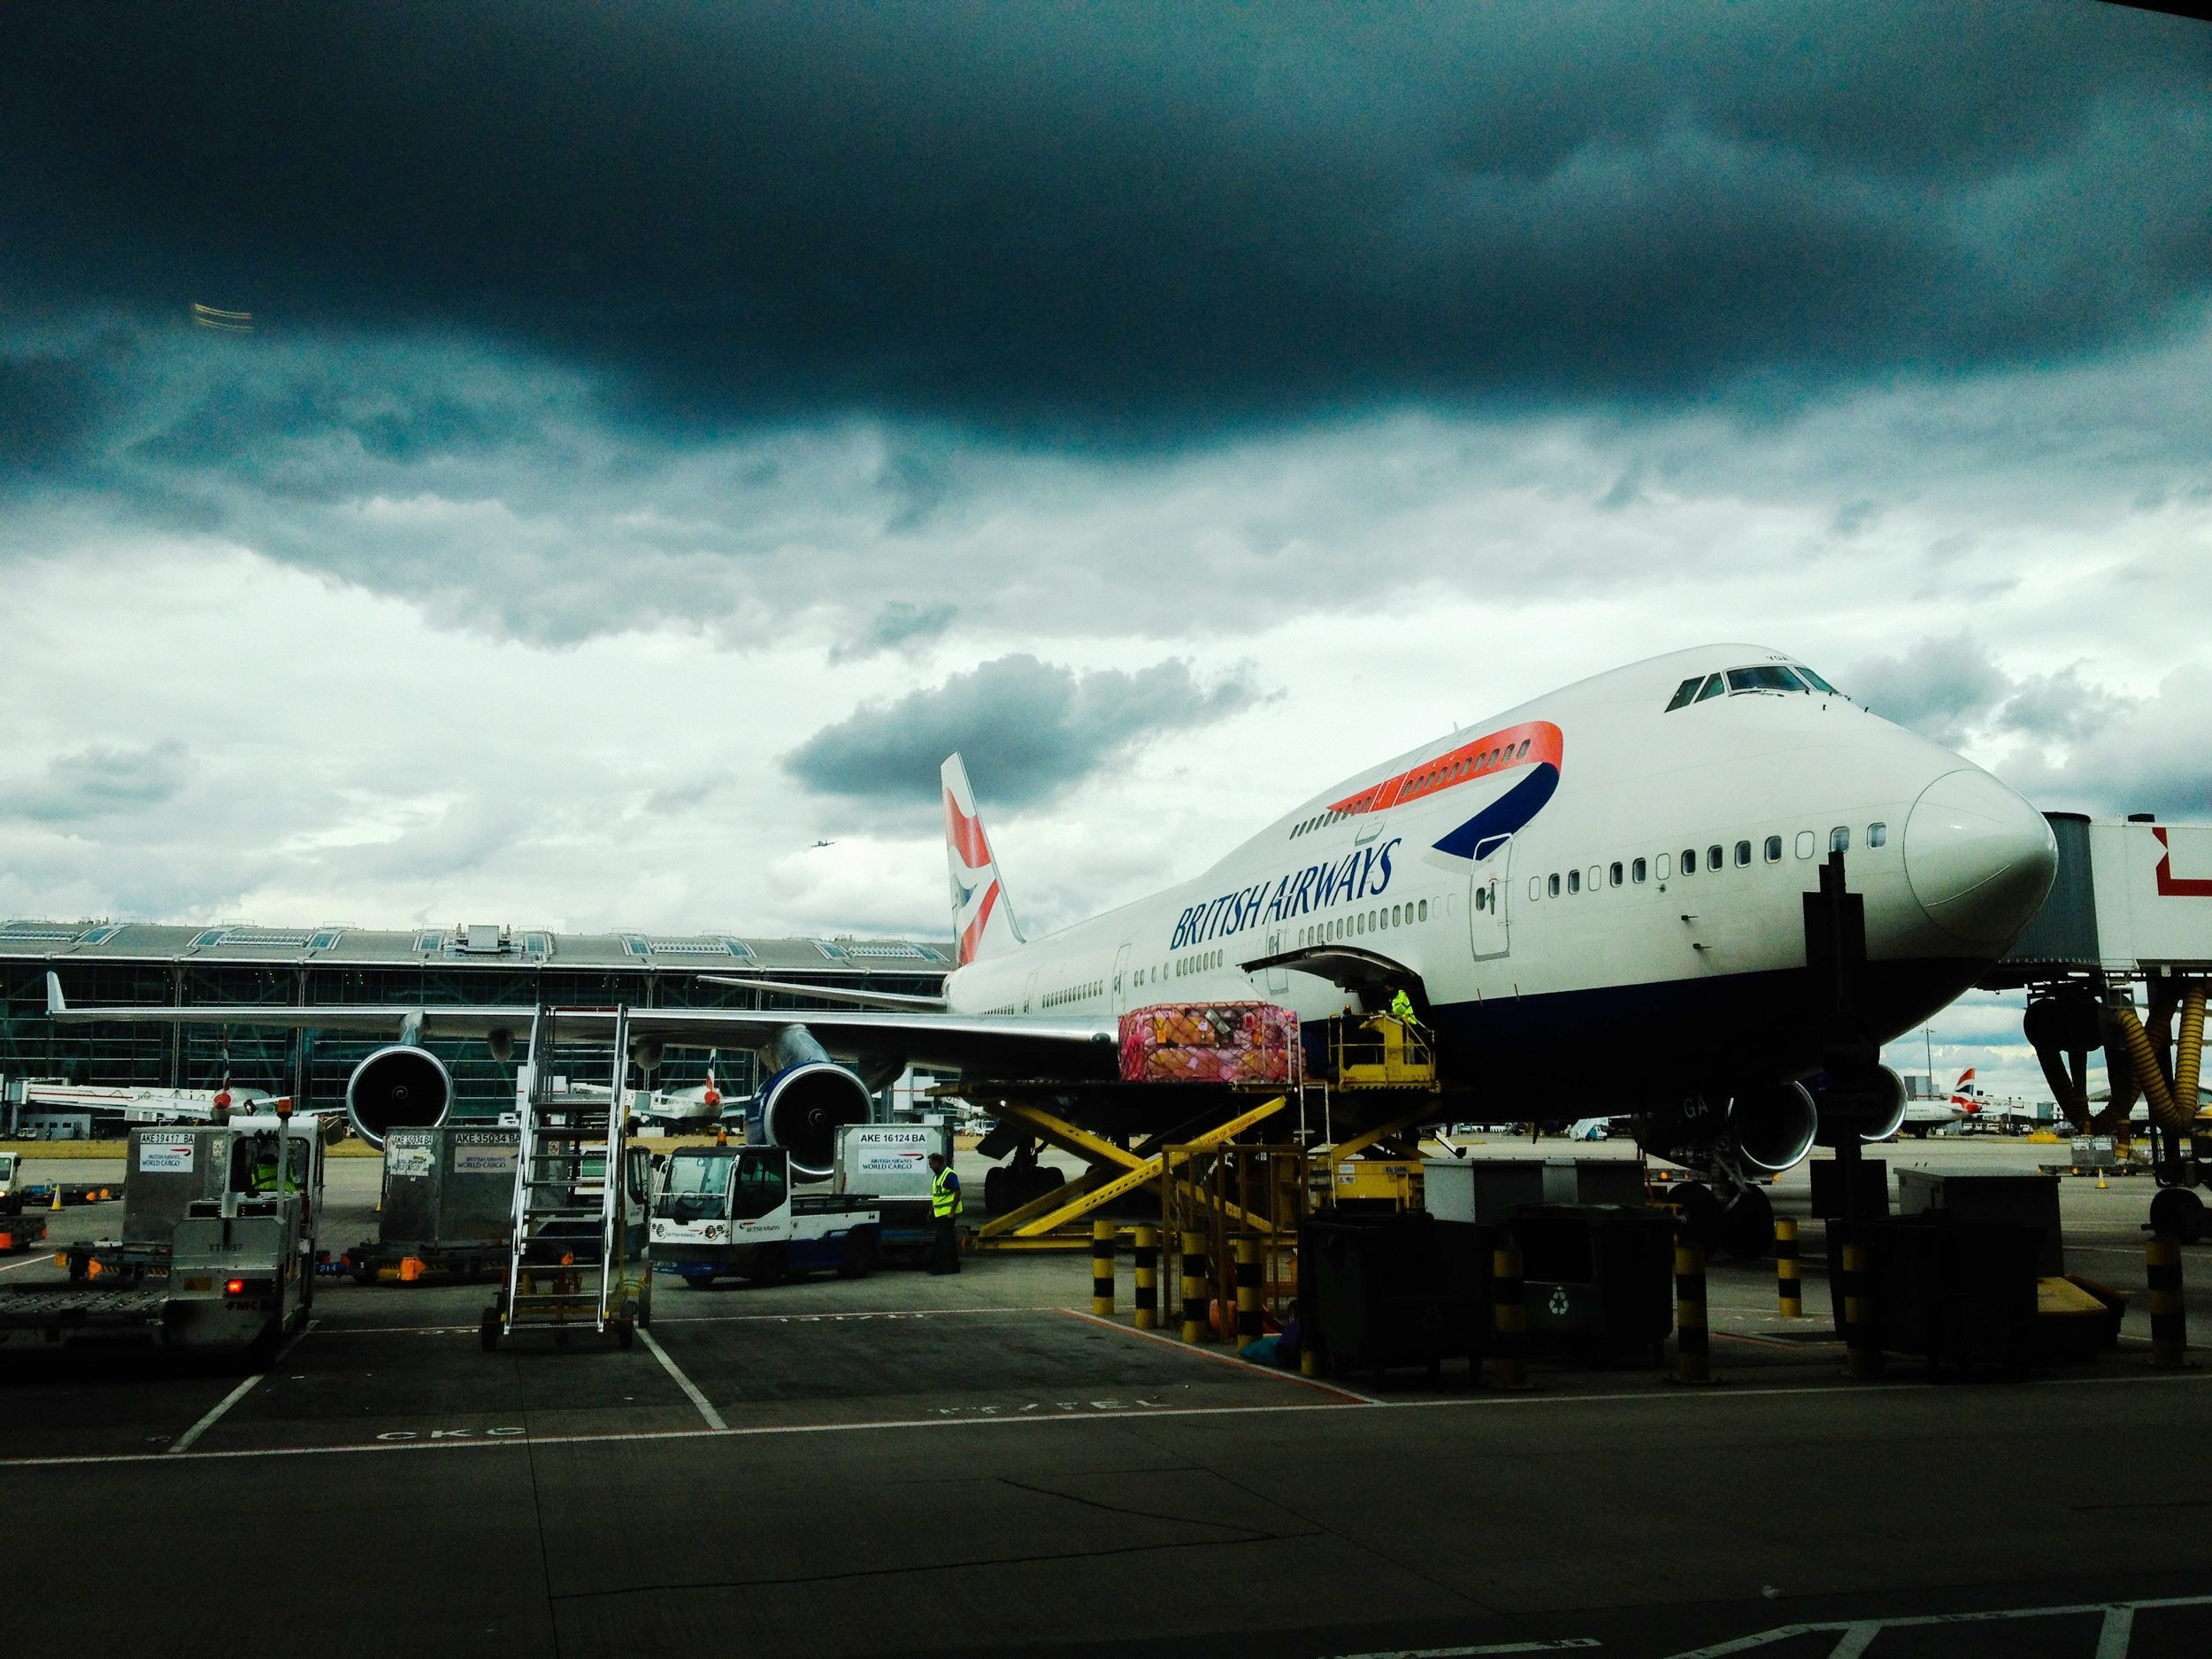 British Airways says it changed its uniform policy in 2007 to accommodate the wearing of religious symbols. (Photo:  Francois Van  |  Unsplash )